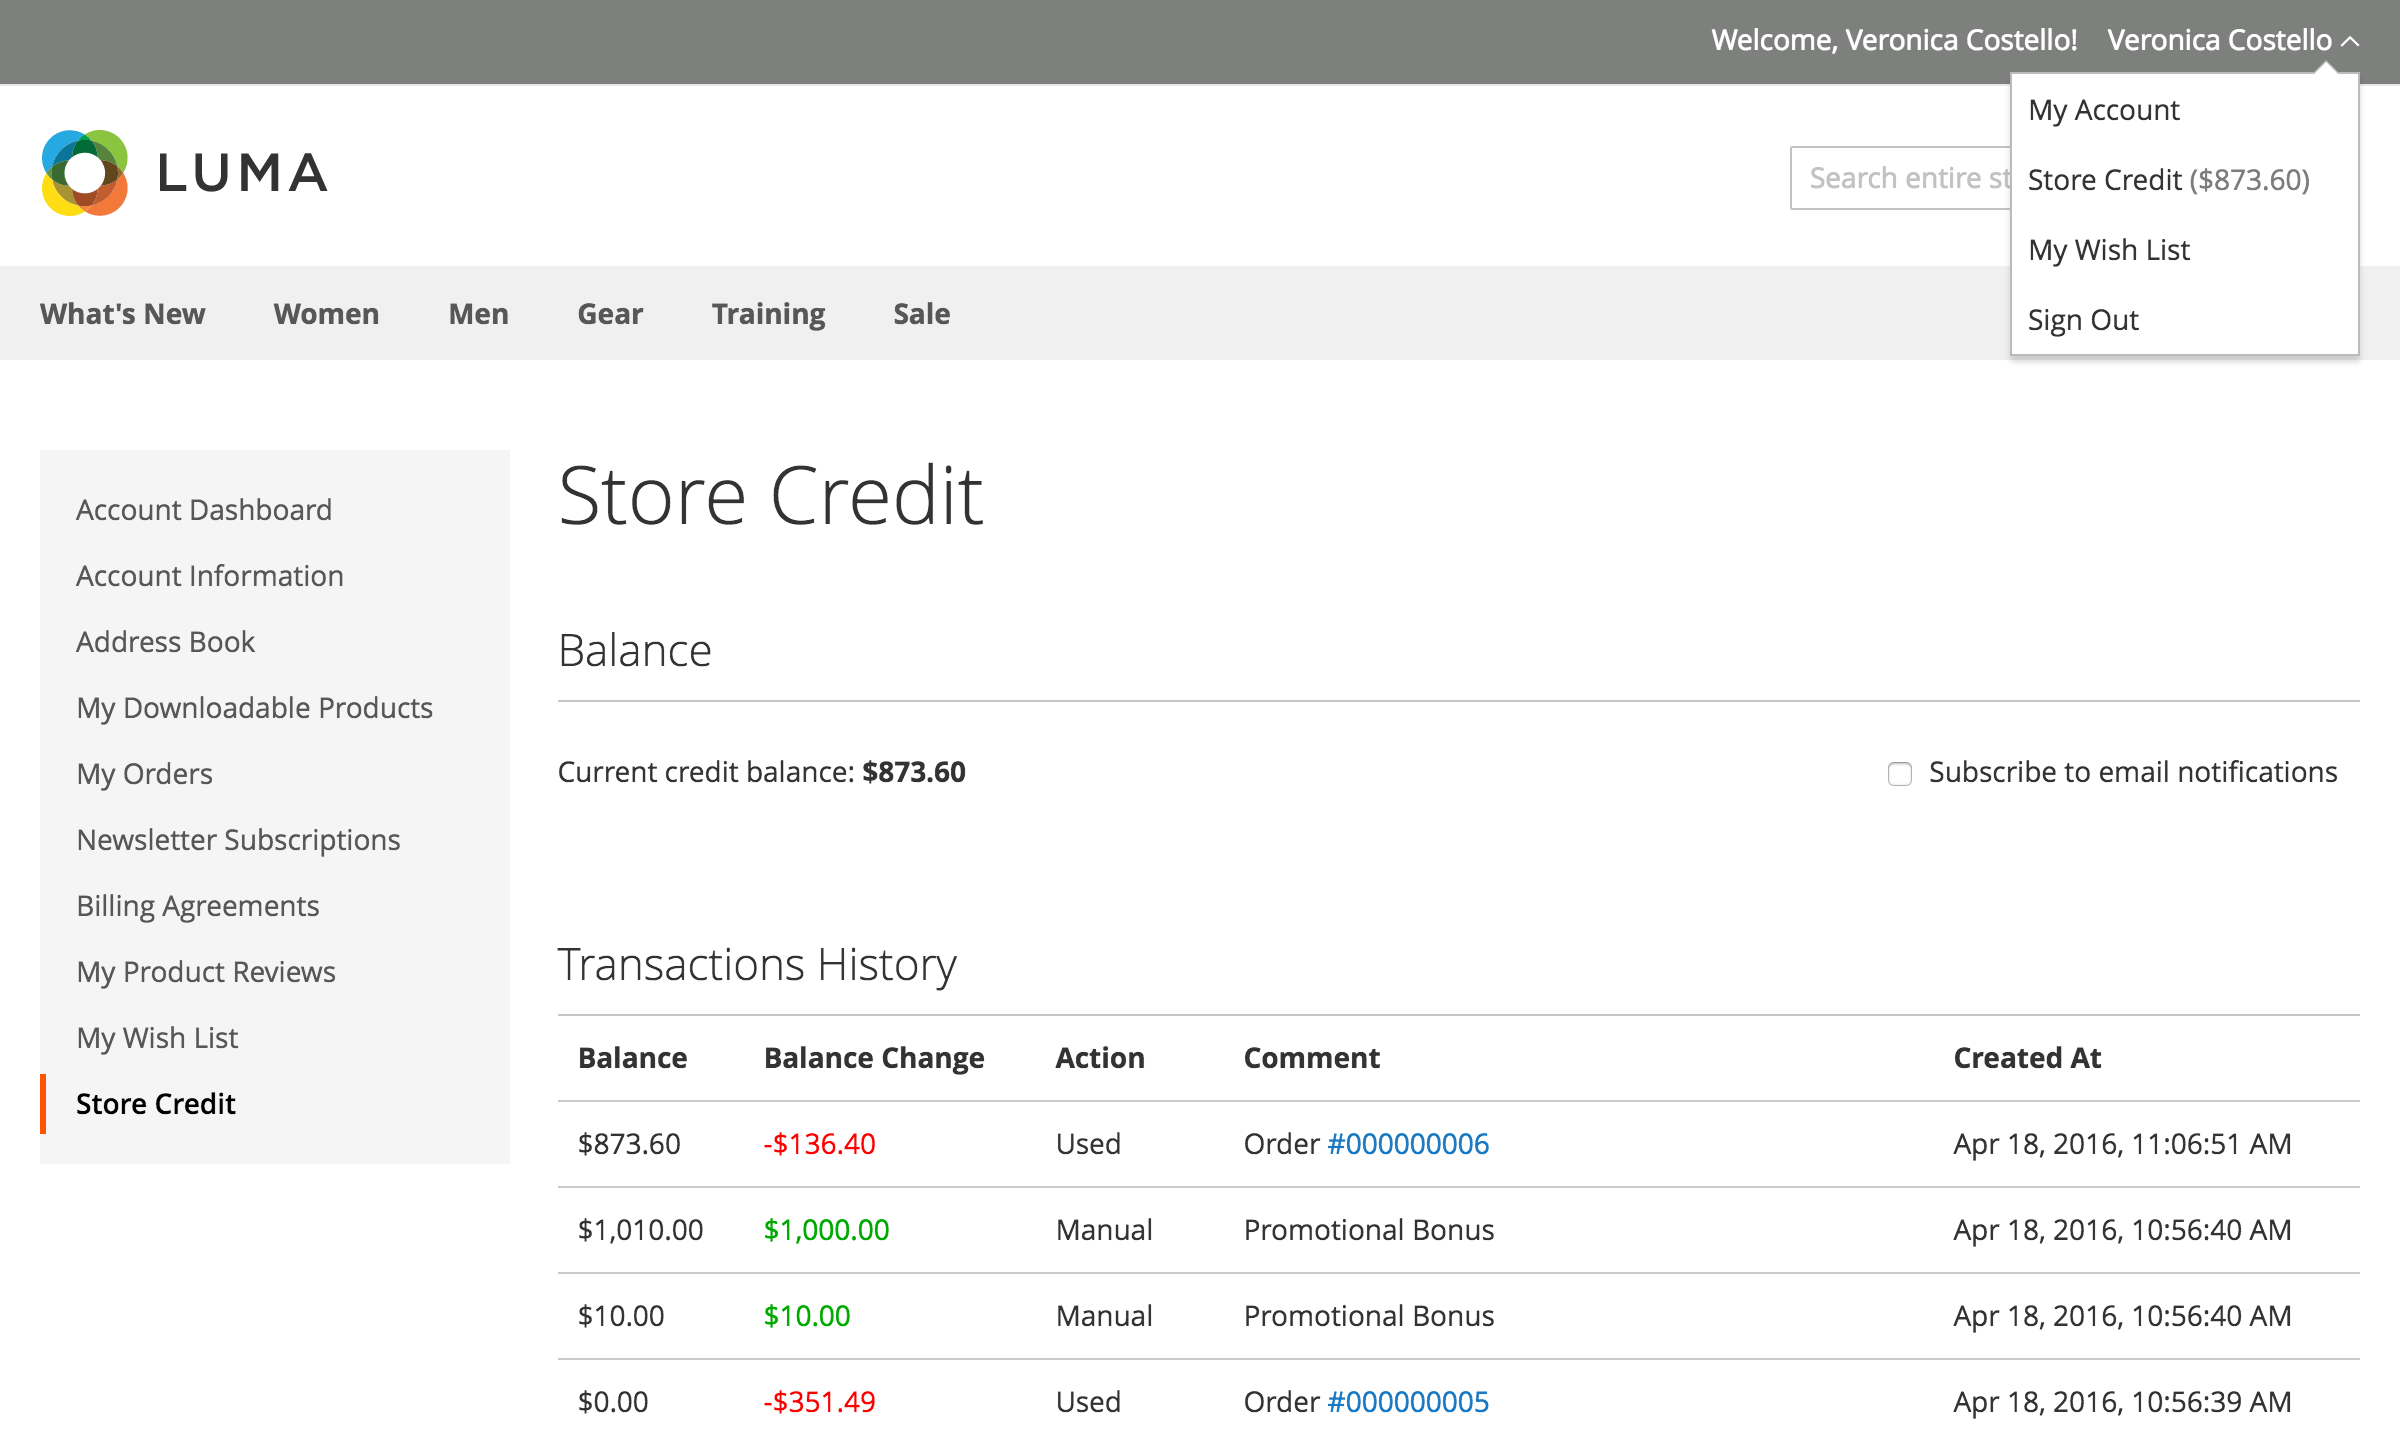 Customer Store Credit Account History